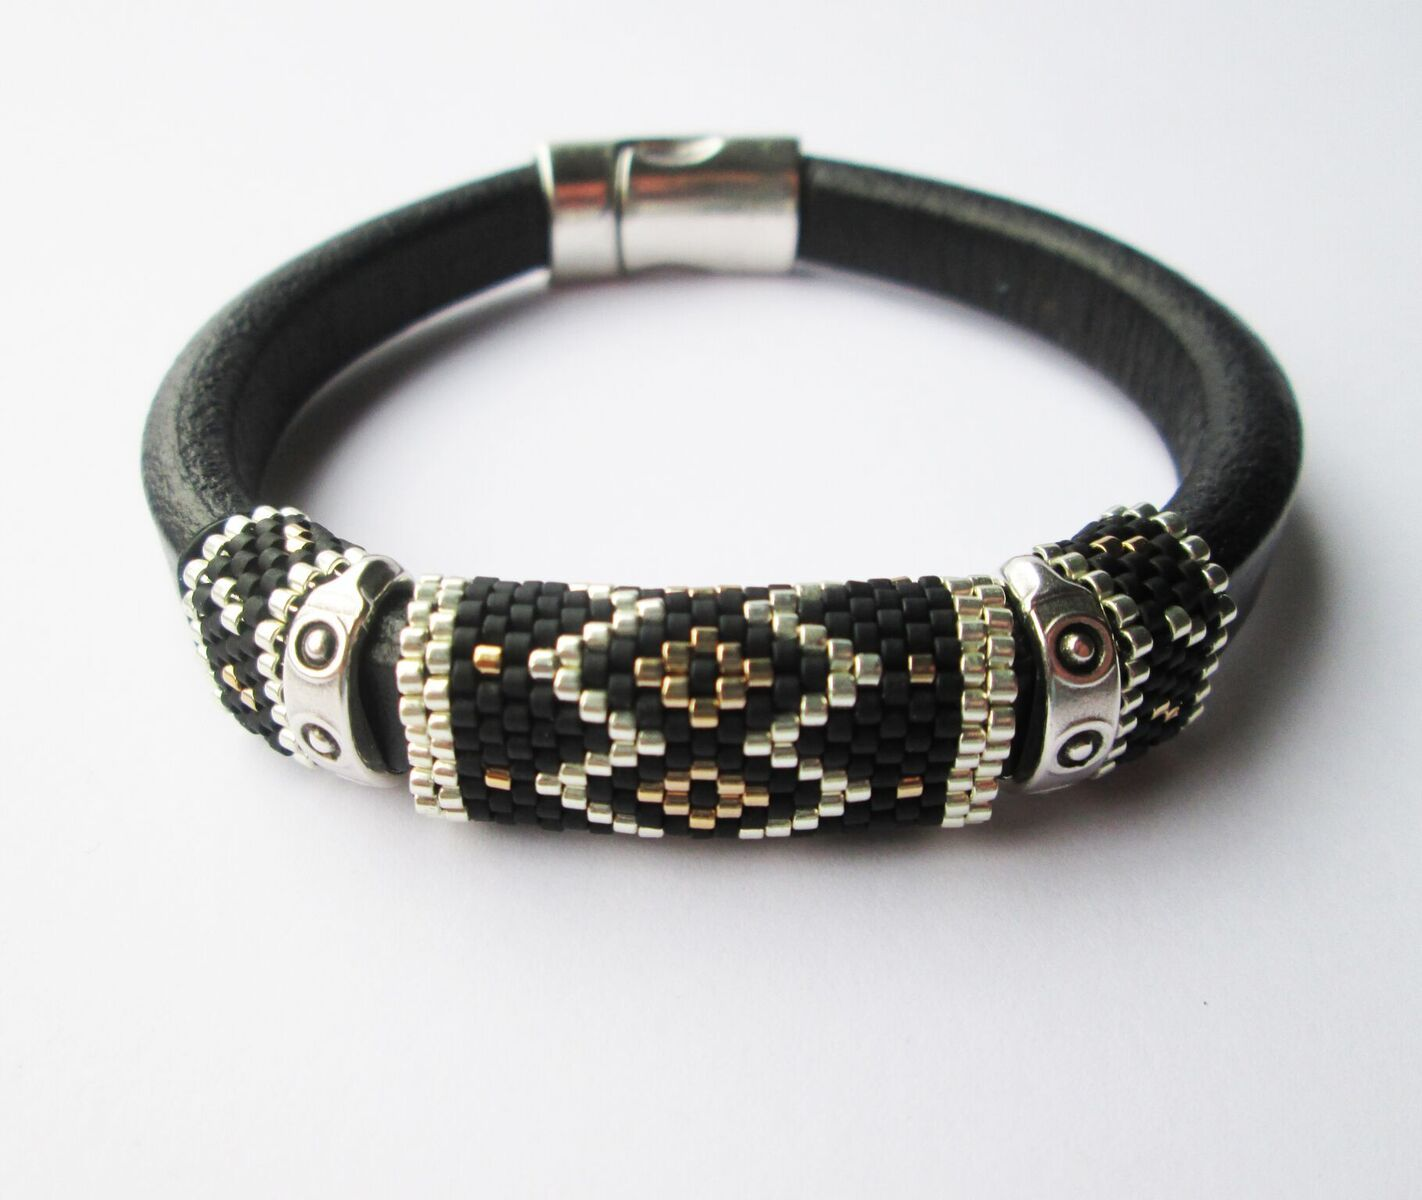 Bracelet Regaliz & Delicas in Black/Silver/Gold Made by Marian Reiniers